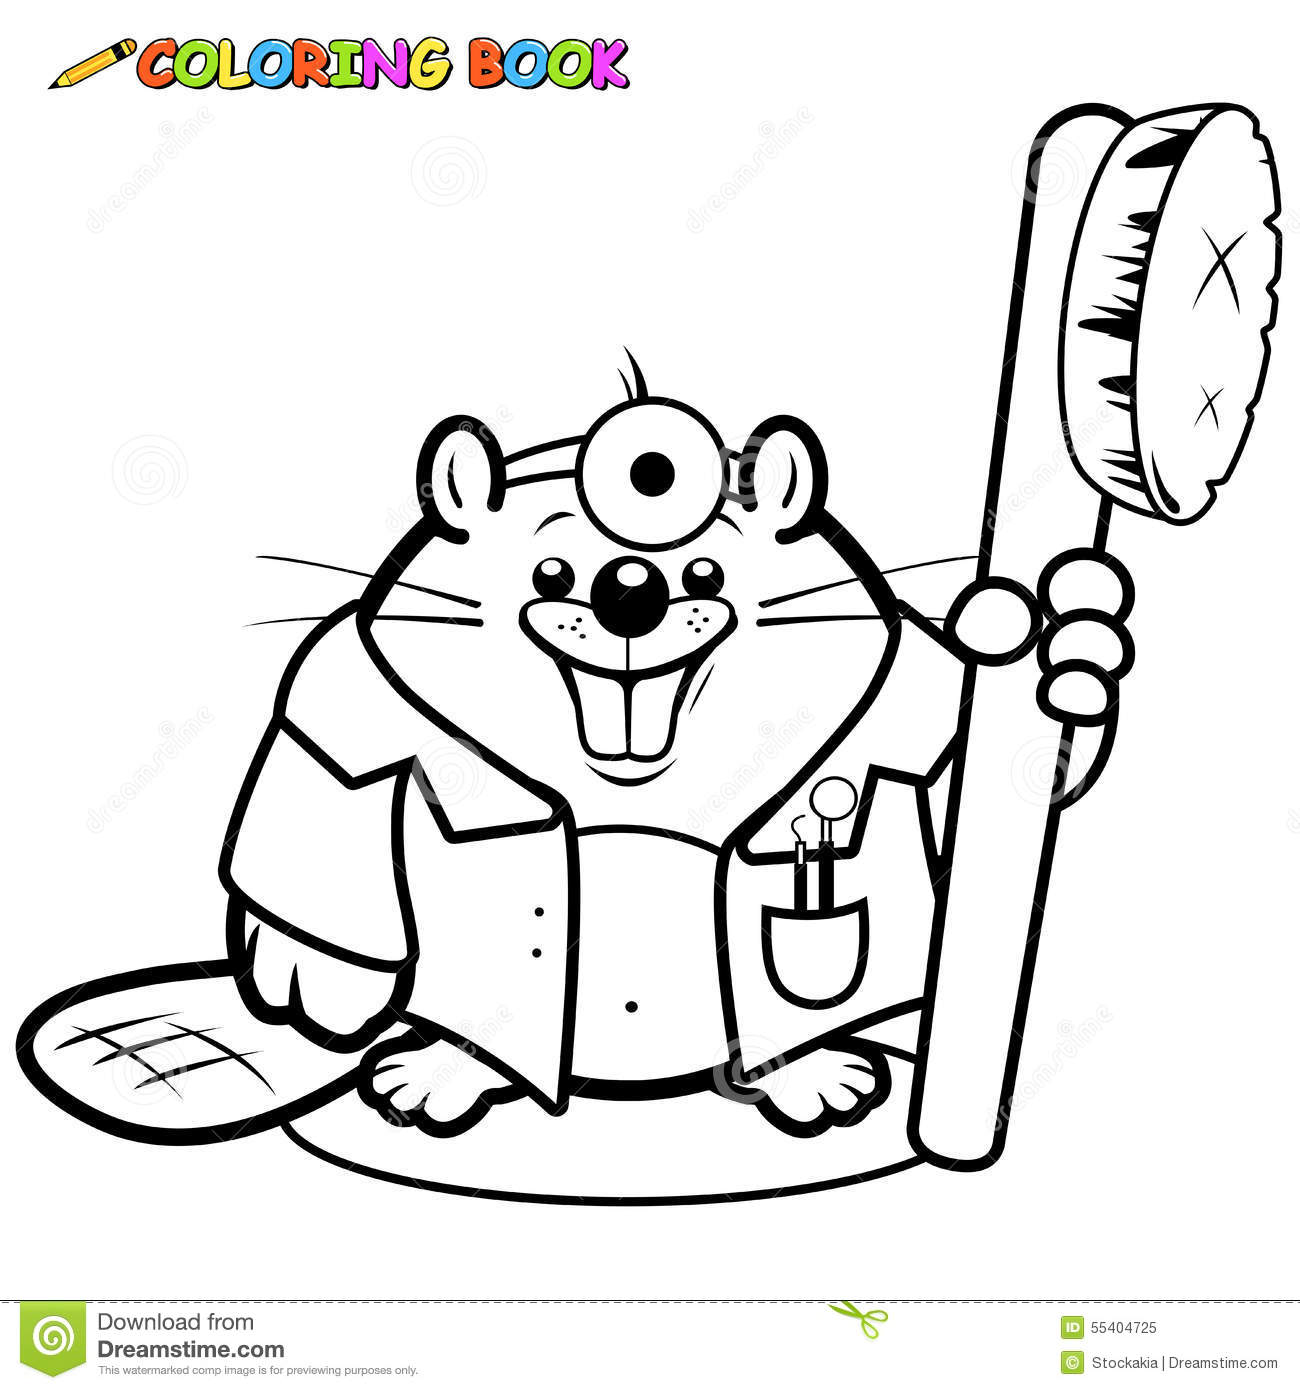 Colouring in pages dental - Beaver Coloring Dentist Holding Illustration Page